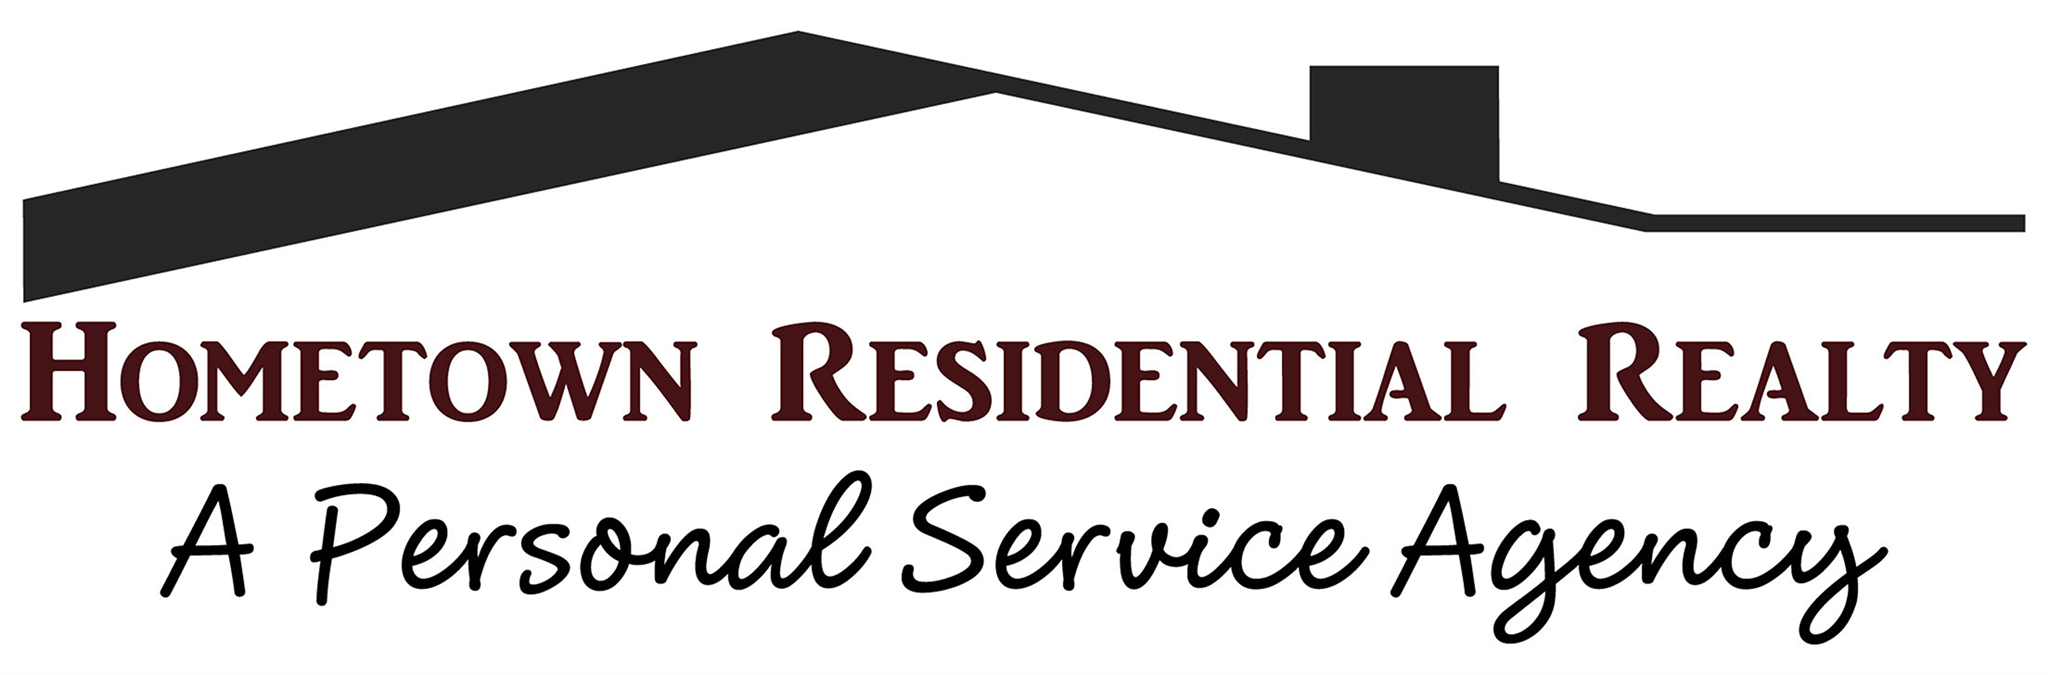 Hometown Residential Realty